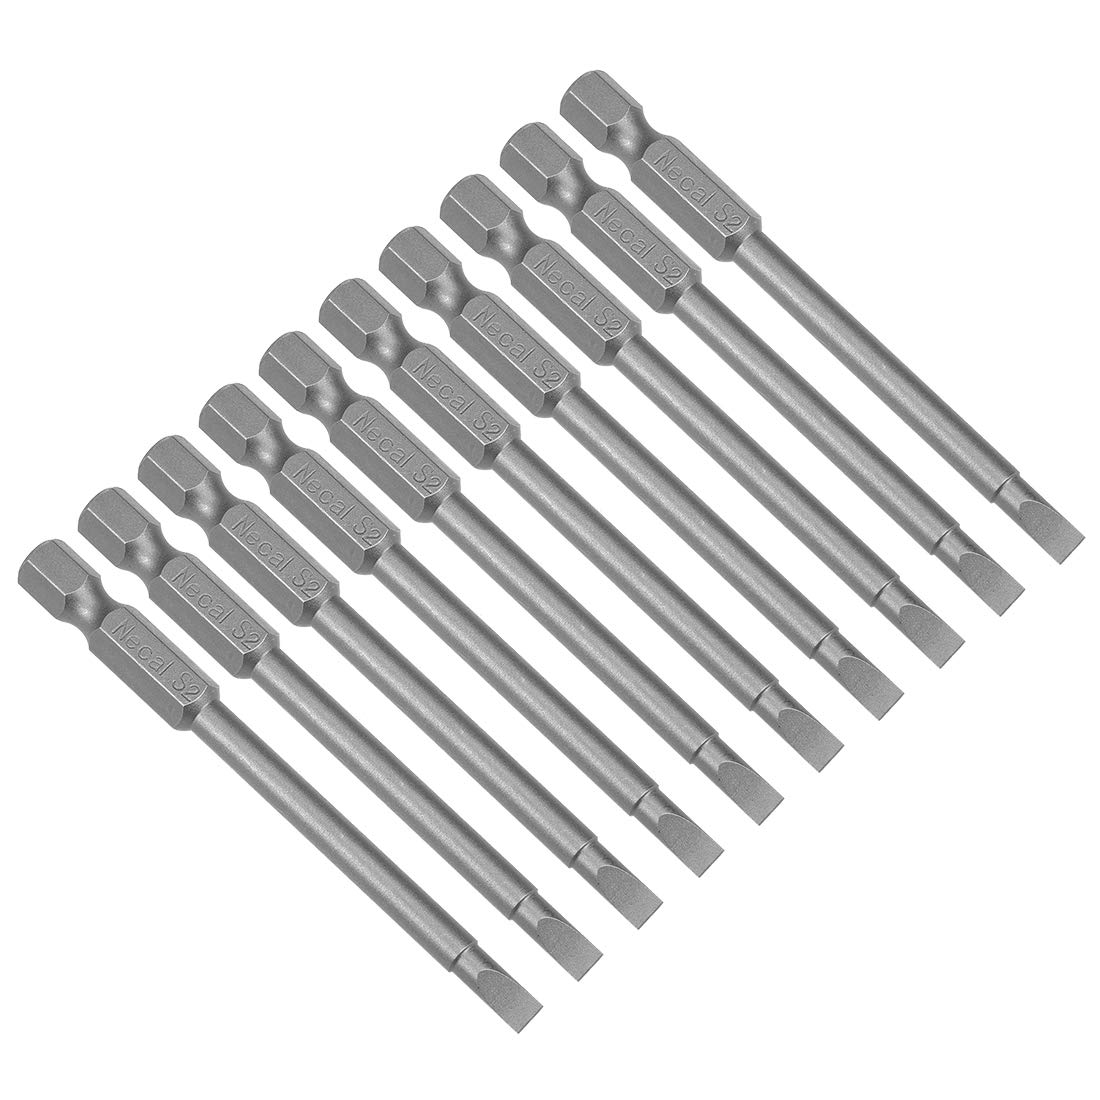 sourcing map 10pcs 50mm 1//4 Hex Shank SL3 Magnetic Slotted Head Screwdriver Bits S2 High Alloy Steel